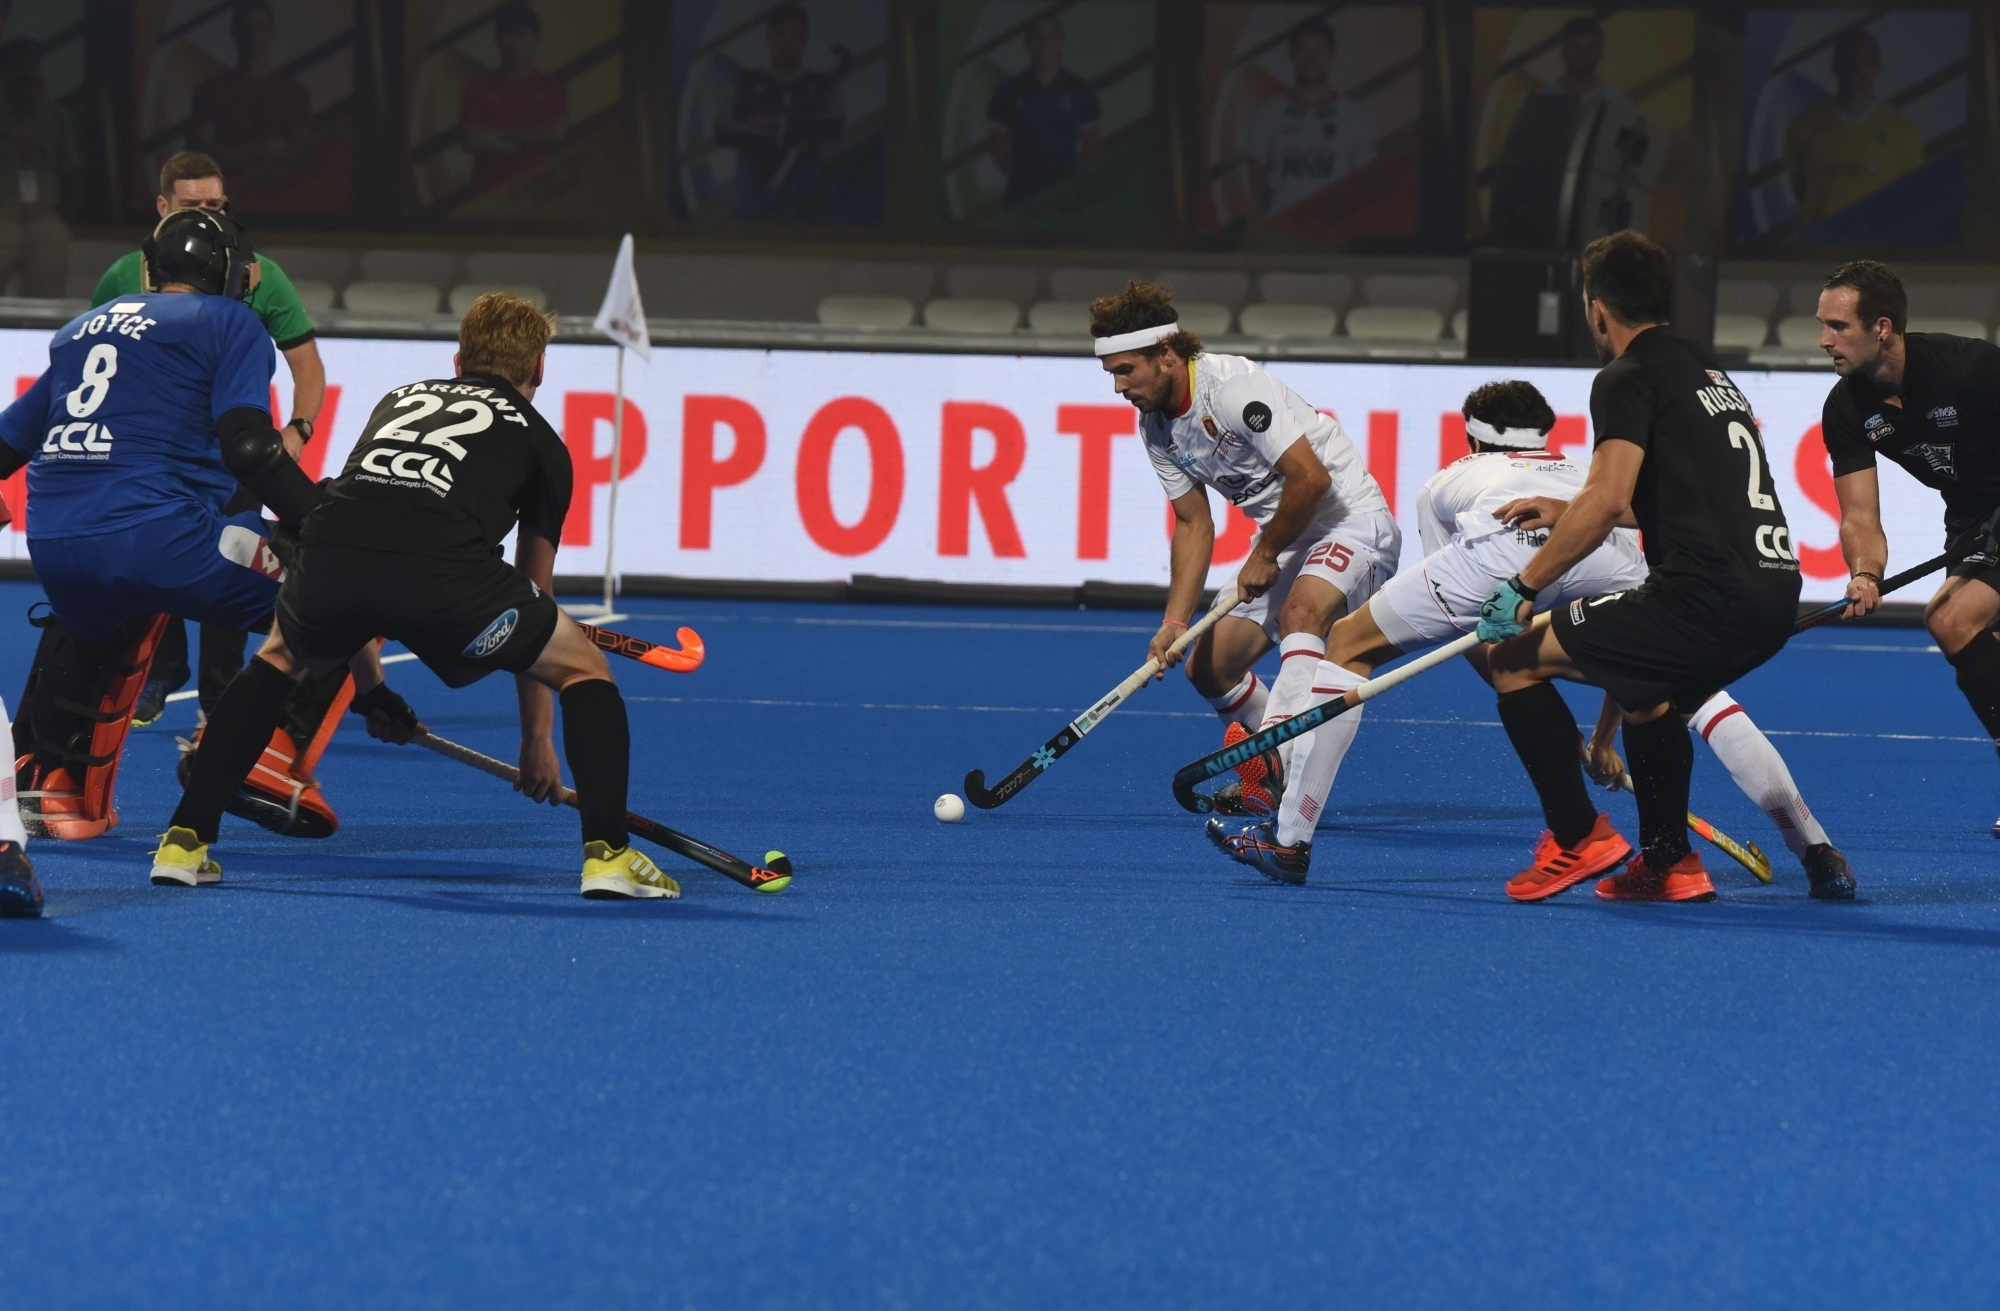 Hockey World Cup: New Zealand play 2-2 draw against Spain